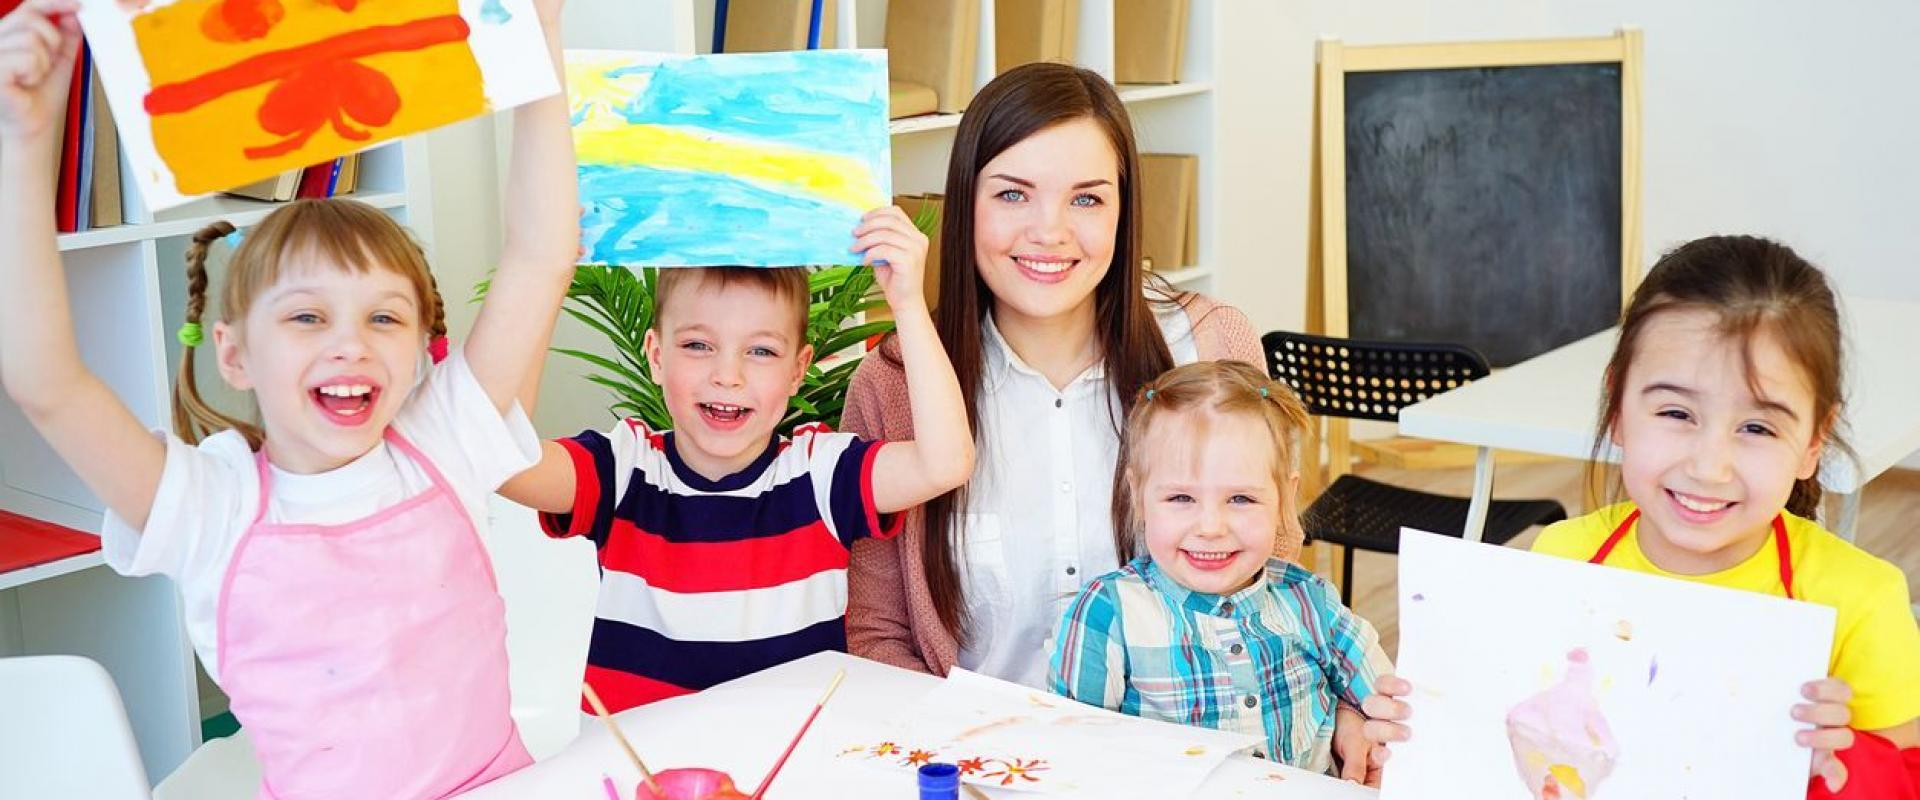 Childcare Business For Sale in Sydney Northern Beaches NSW contact Andrew Urquhart